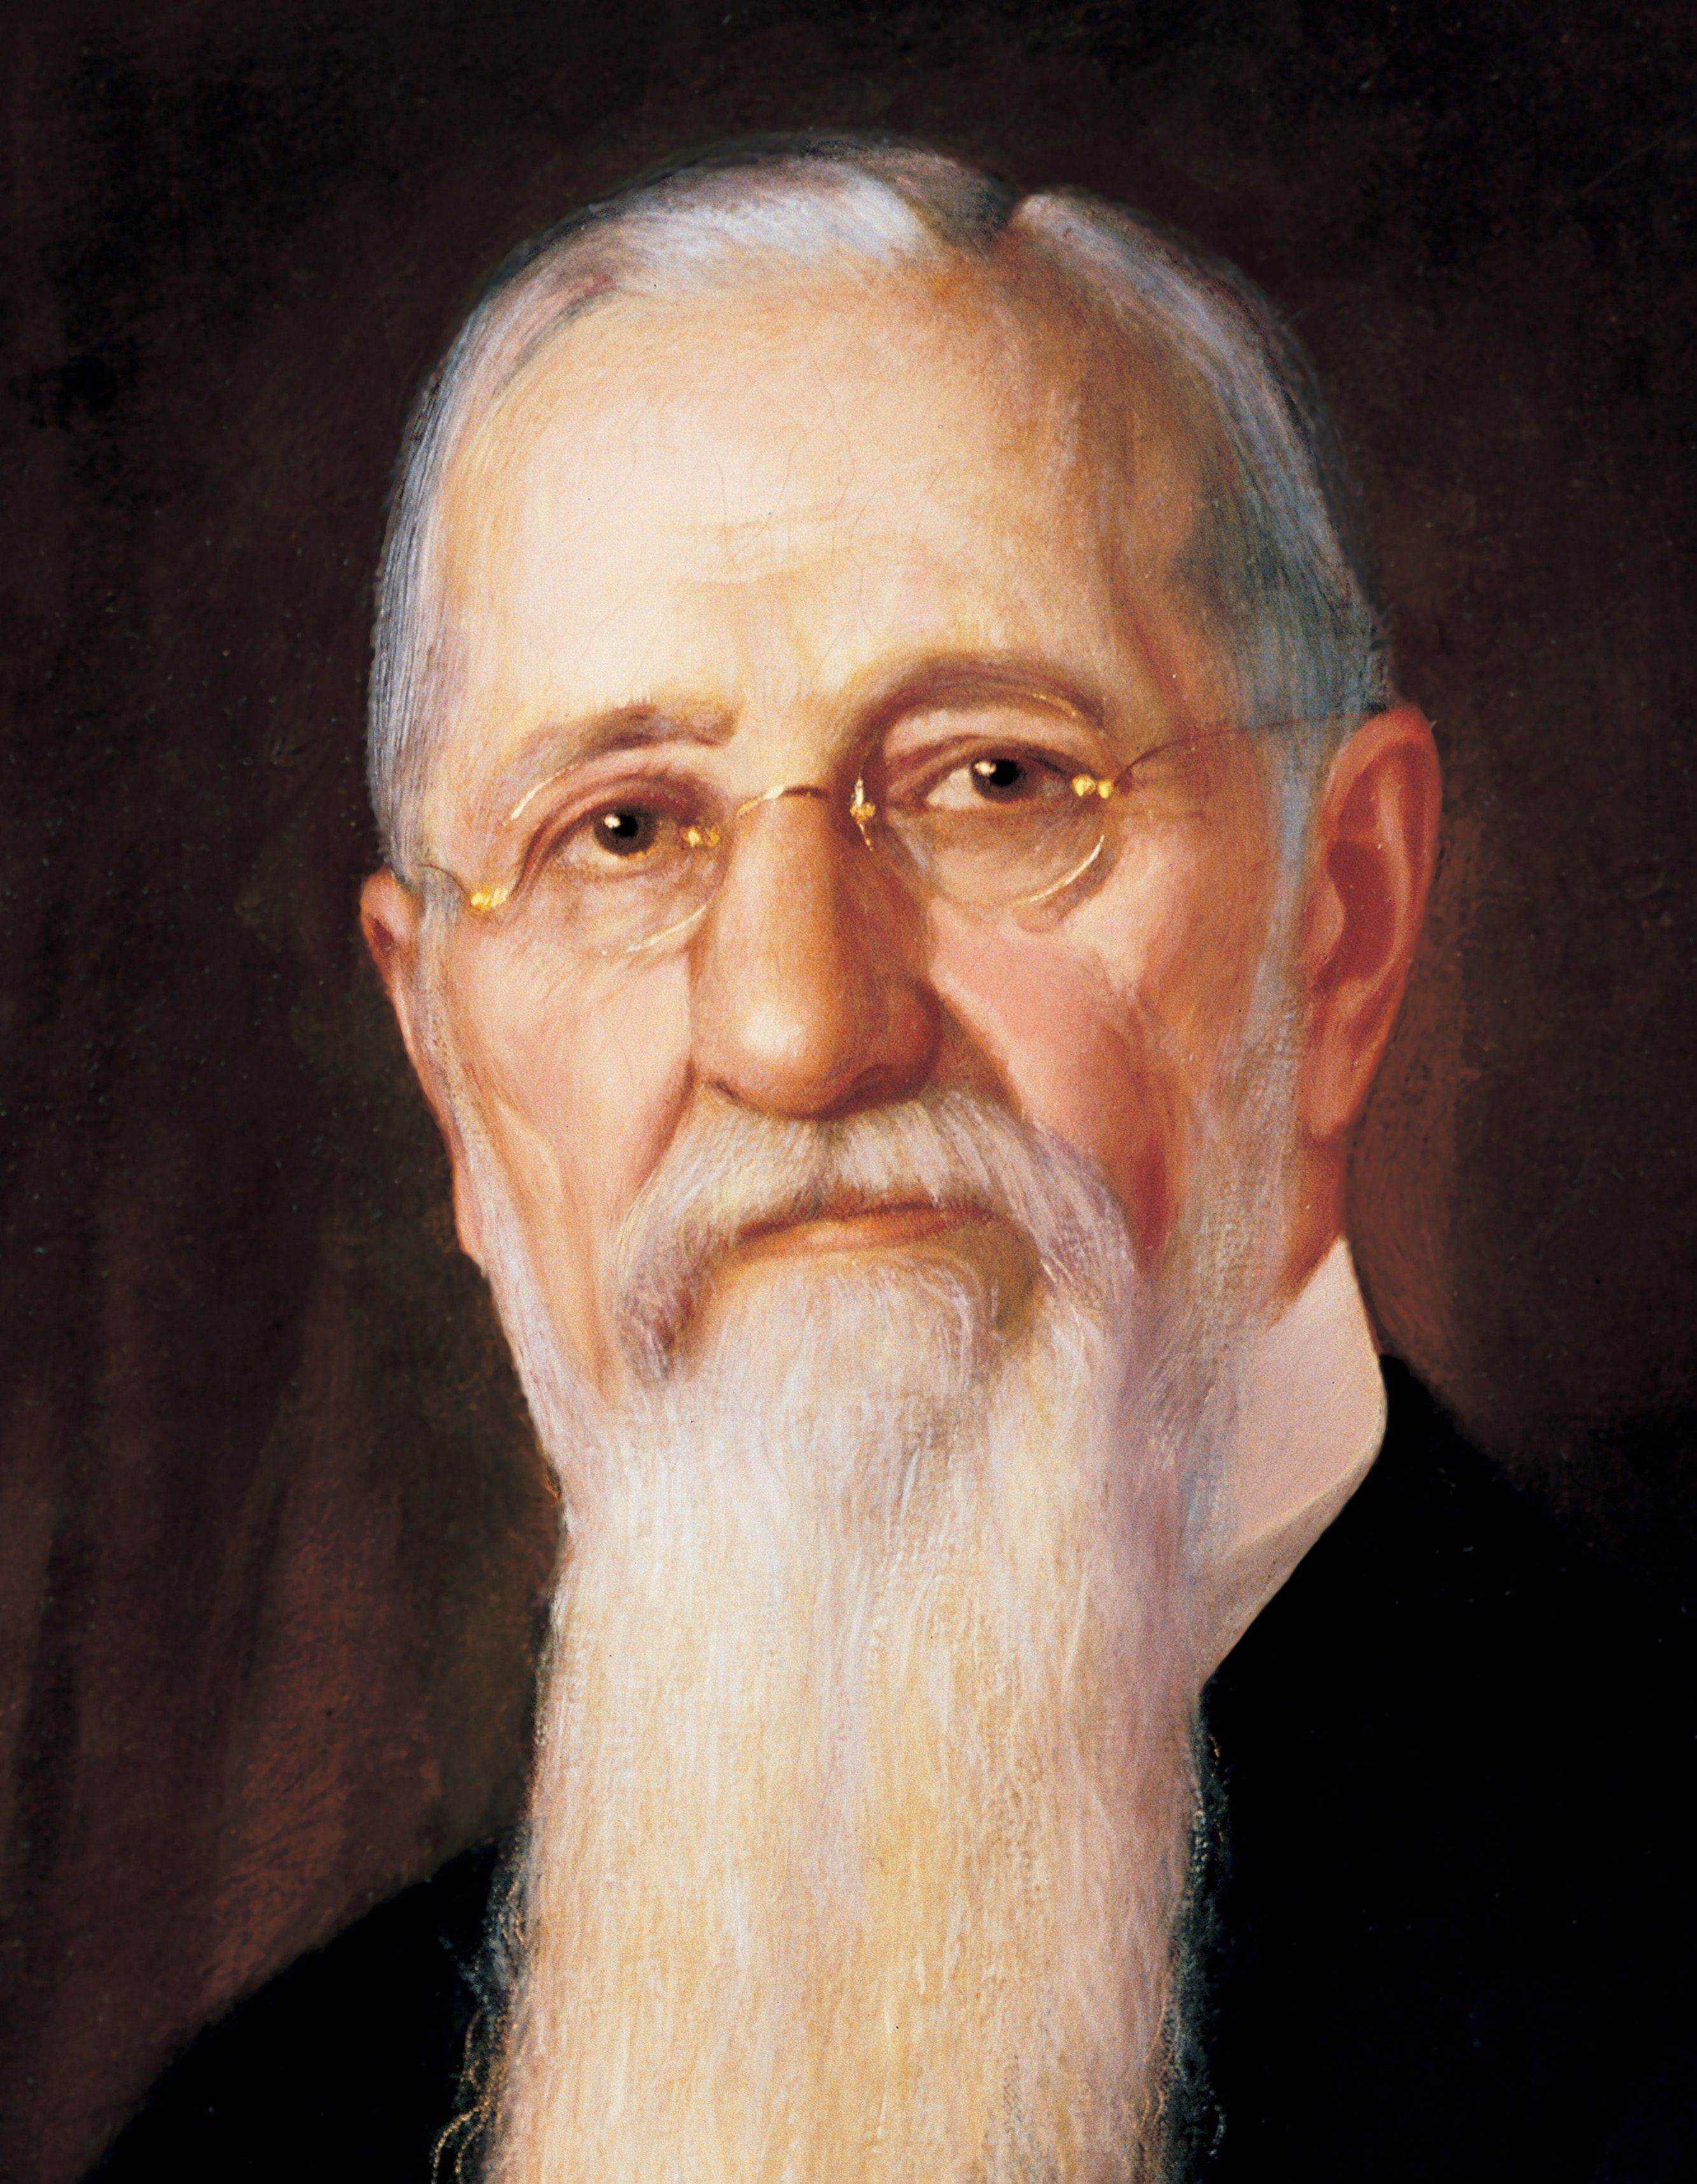 Joseph F. Smith, by A. Salzbrenner; GAK 511; GAB 127; Our Heritage, 105–7. President Joseph F. Smith served as the sixth President of the Church from 1901 to 1918.